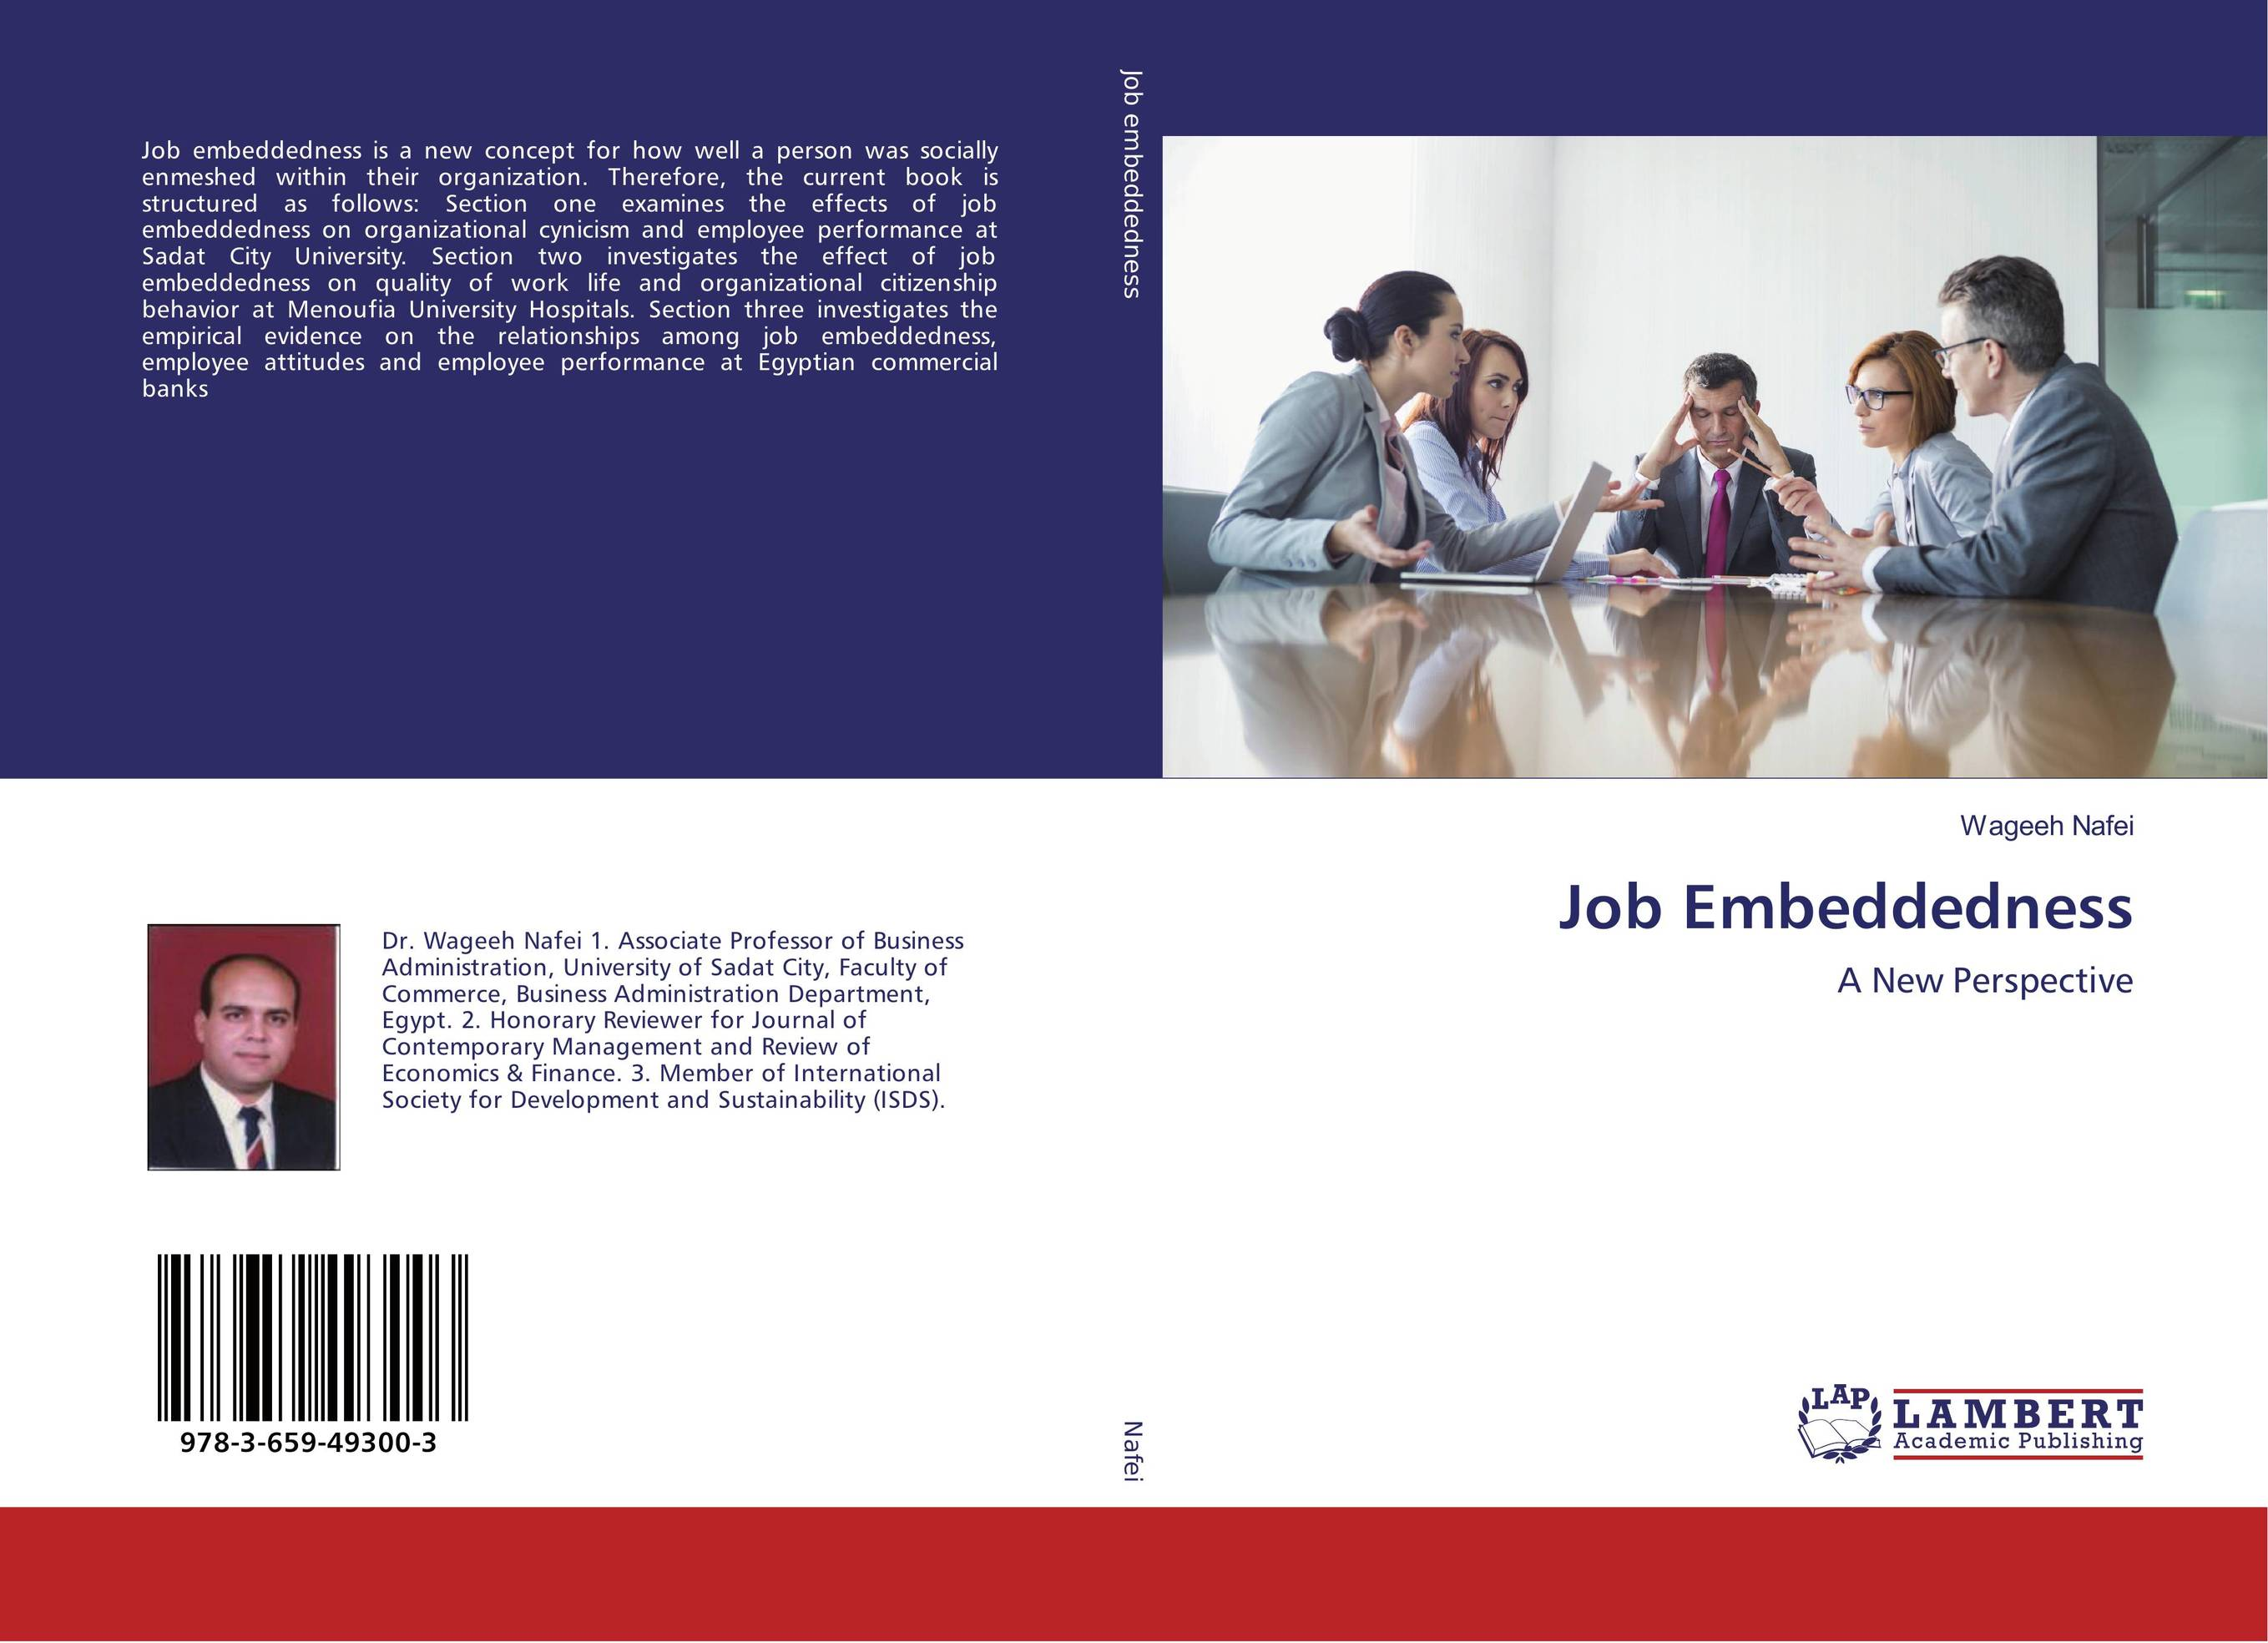 the effects of on the job training on On-the-job training is still the predominant form of job training in the united states, particularly for nonmanagerial employees numerous studies indicate that it is the most effective form of job training the largest share of on-the-job training is provided by the private sector, though the most widely.